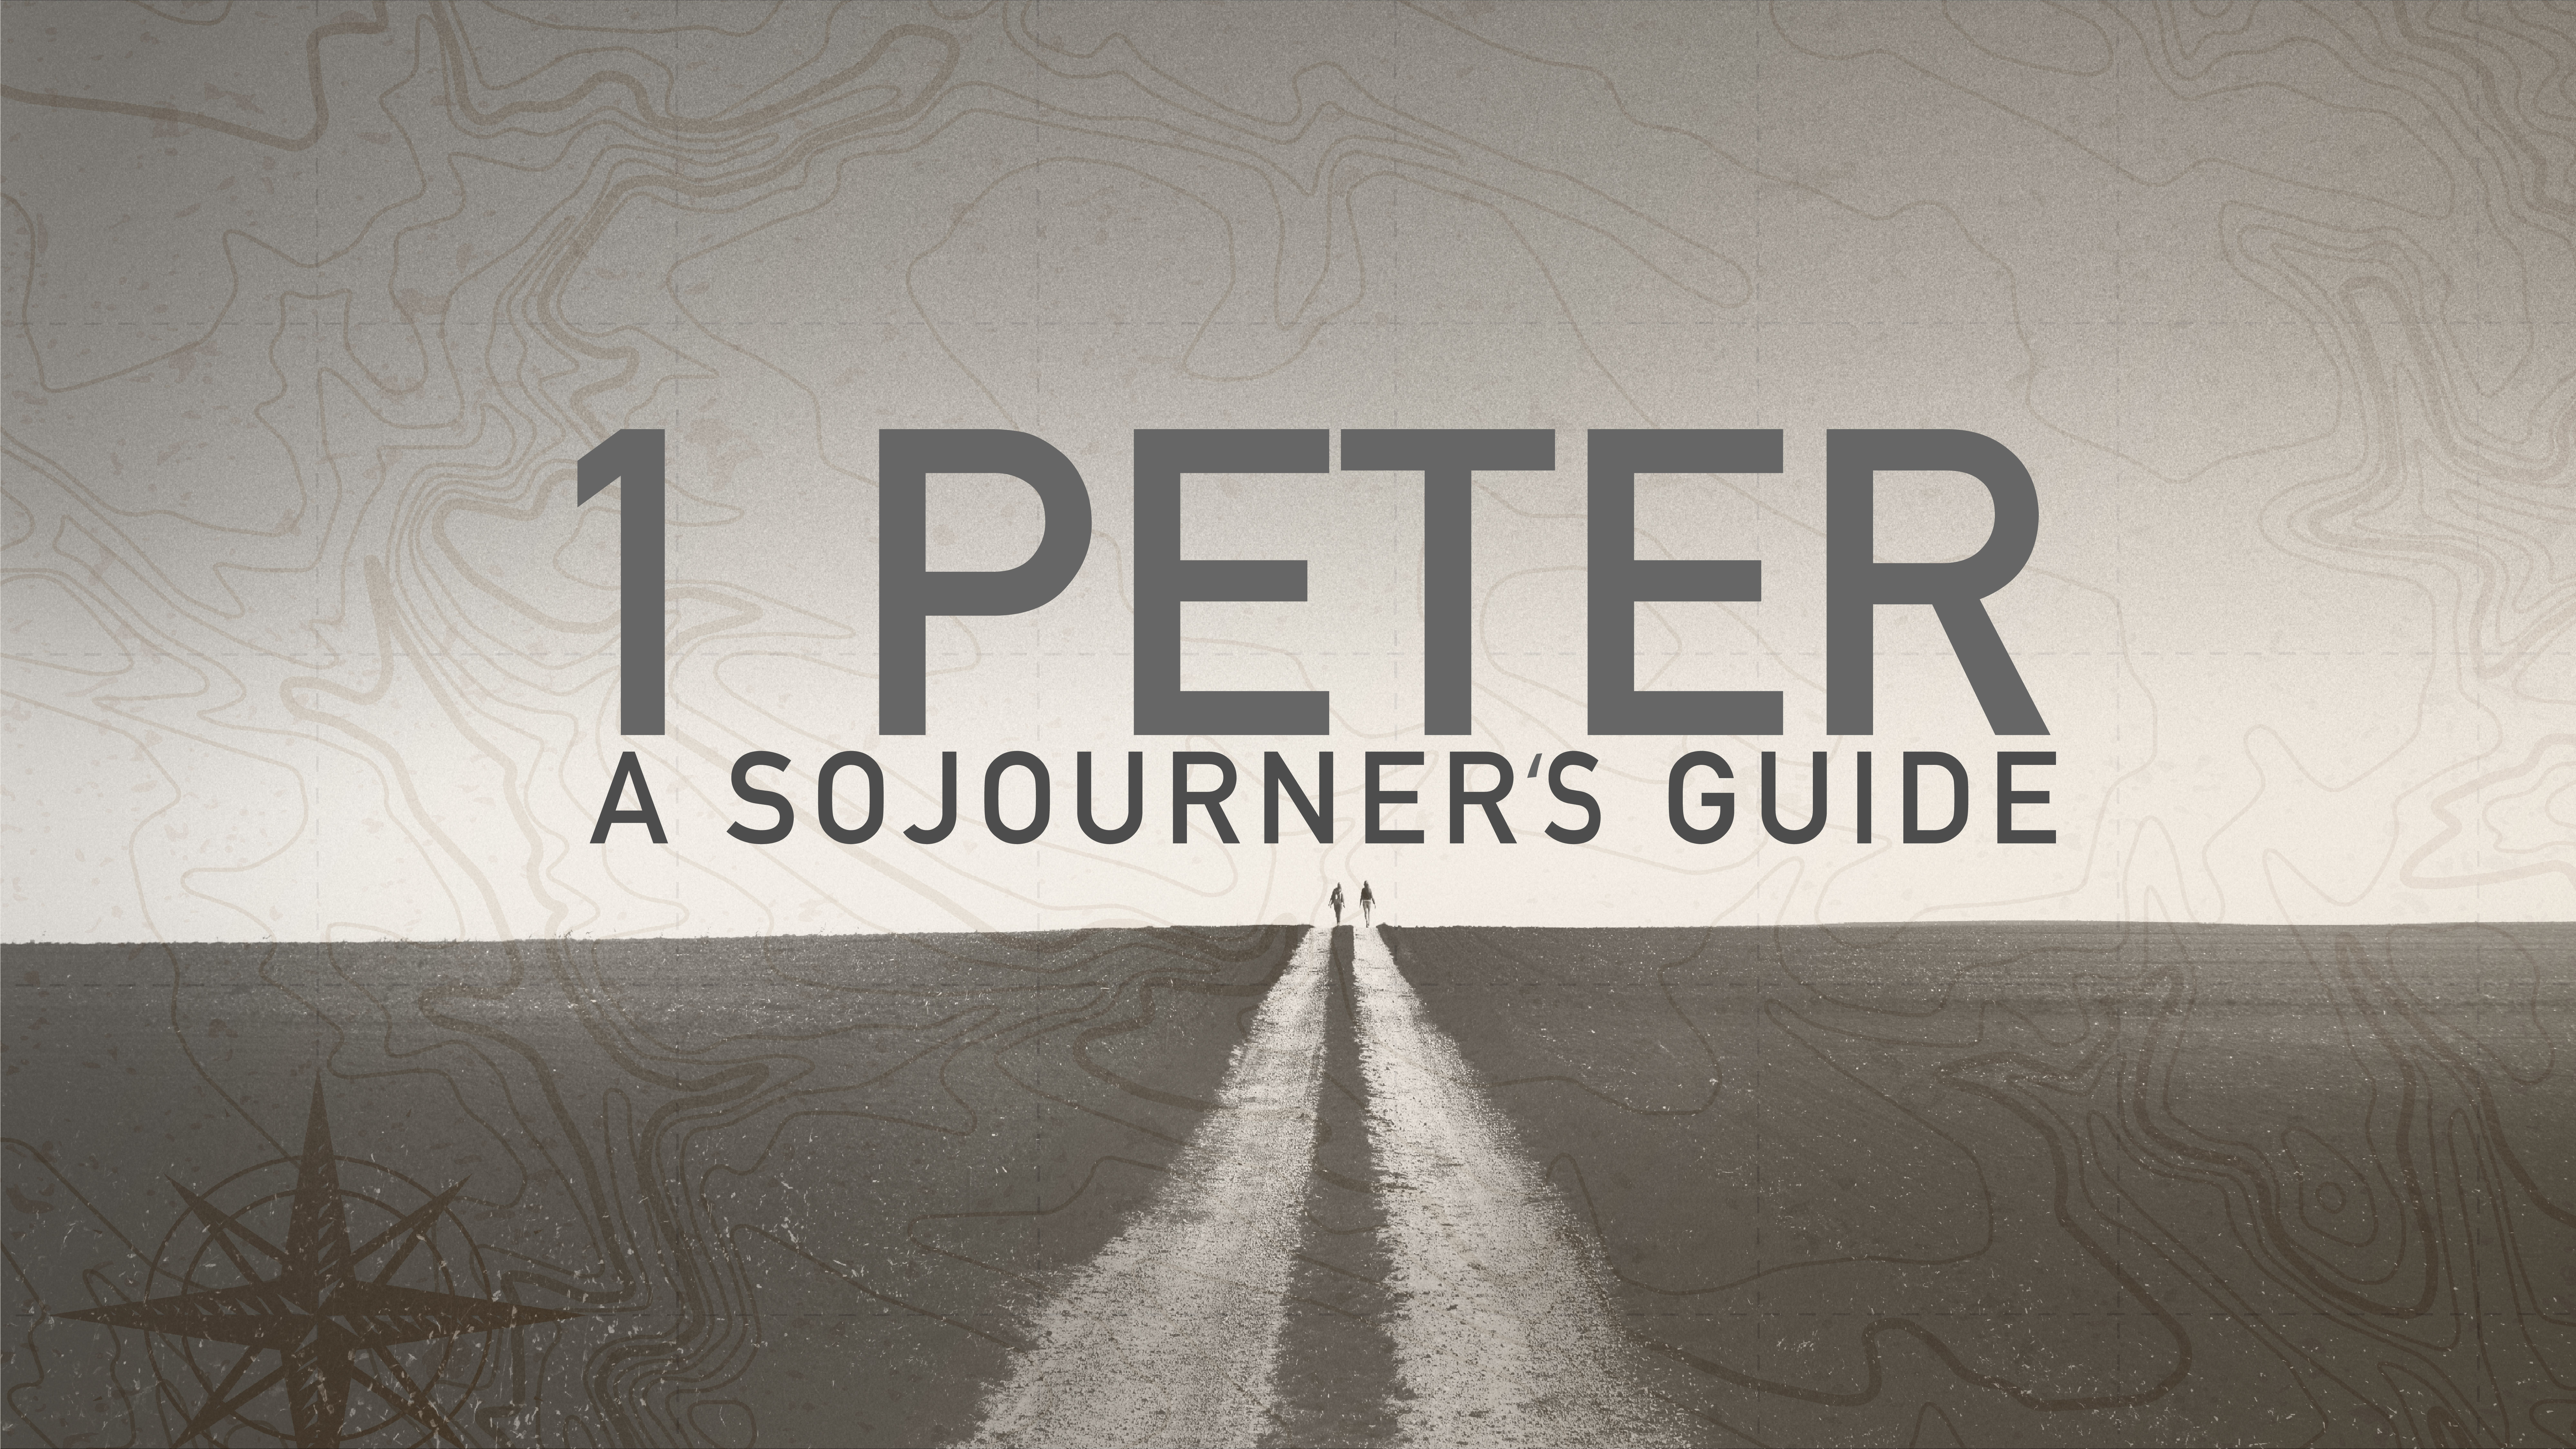 1st Peter: A Sojourner's Guide